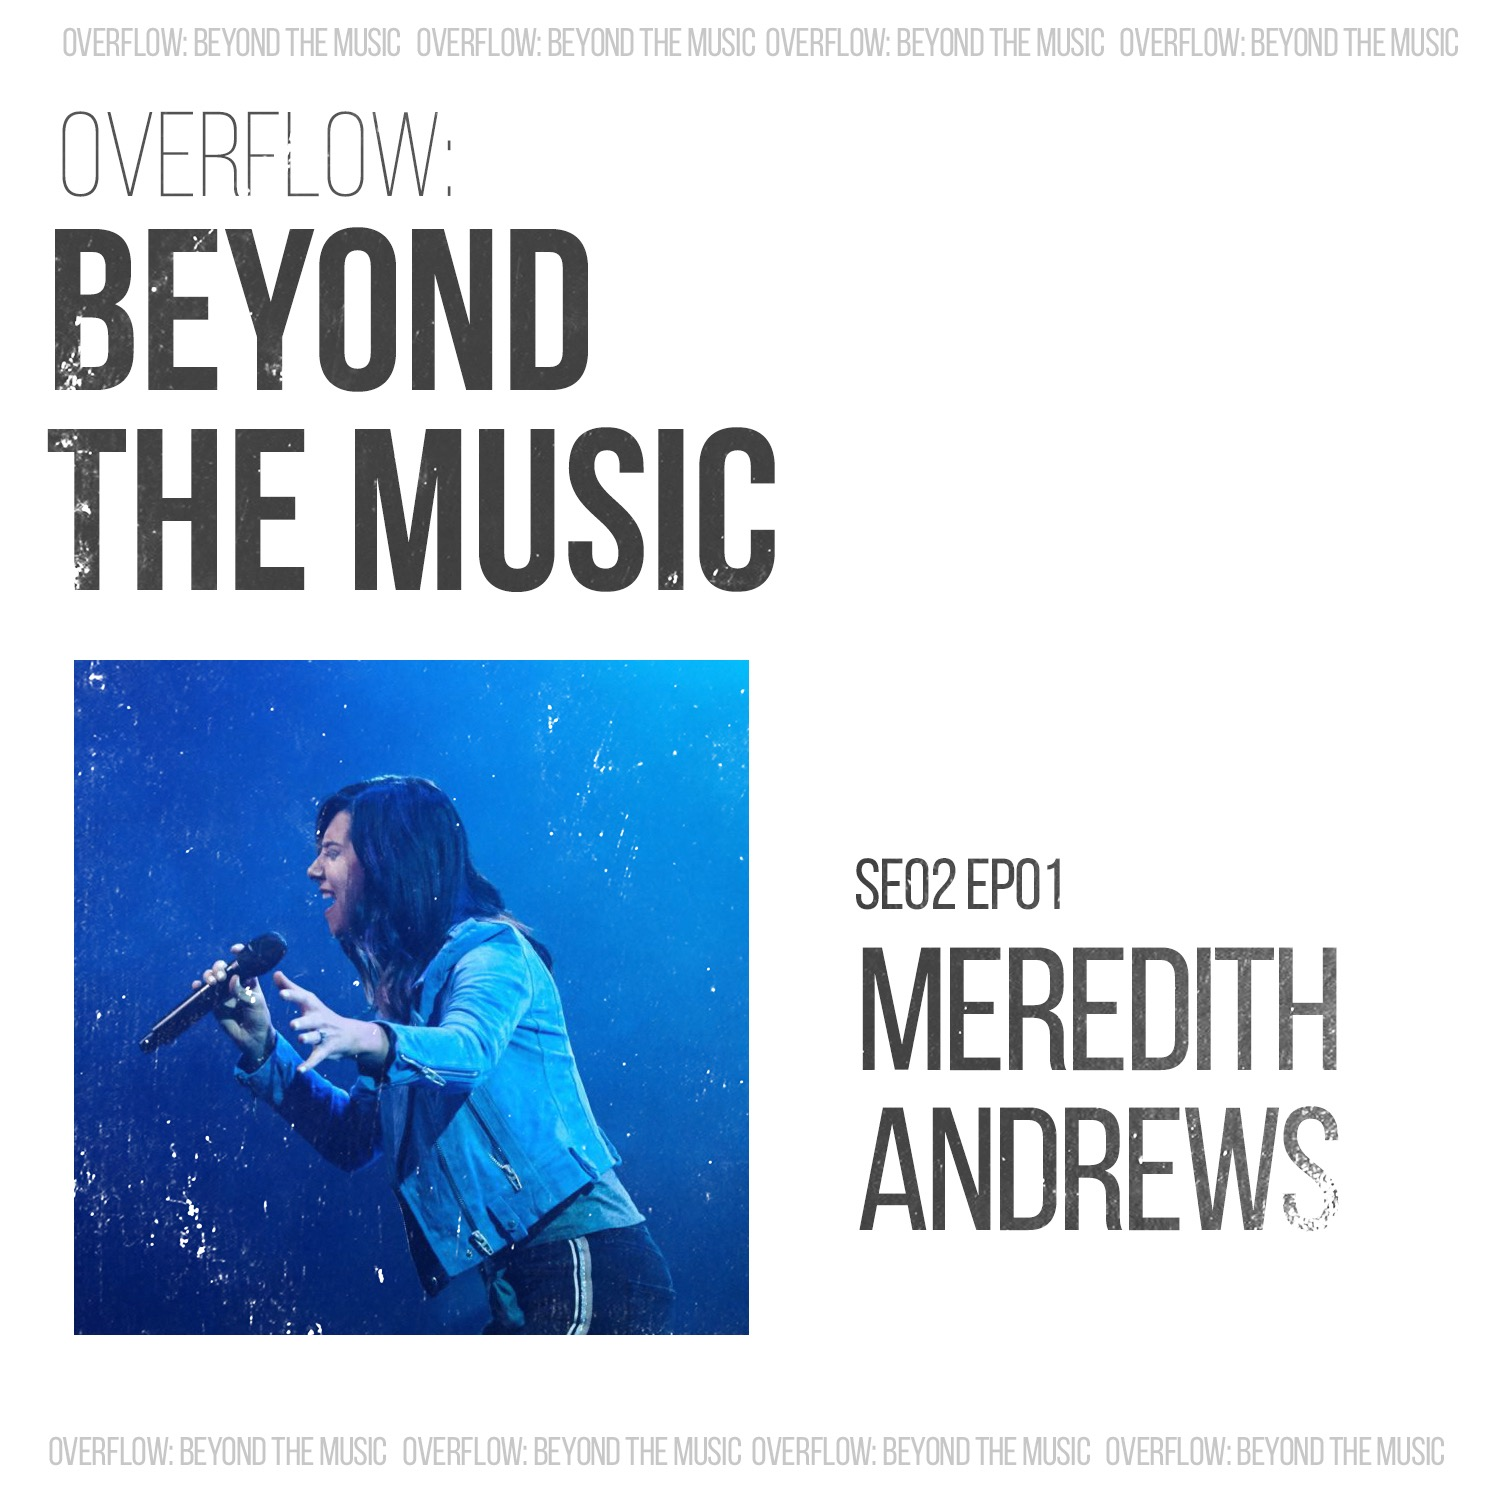 Meredith Andrews: Returning to a place of Wonder